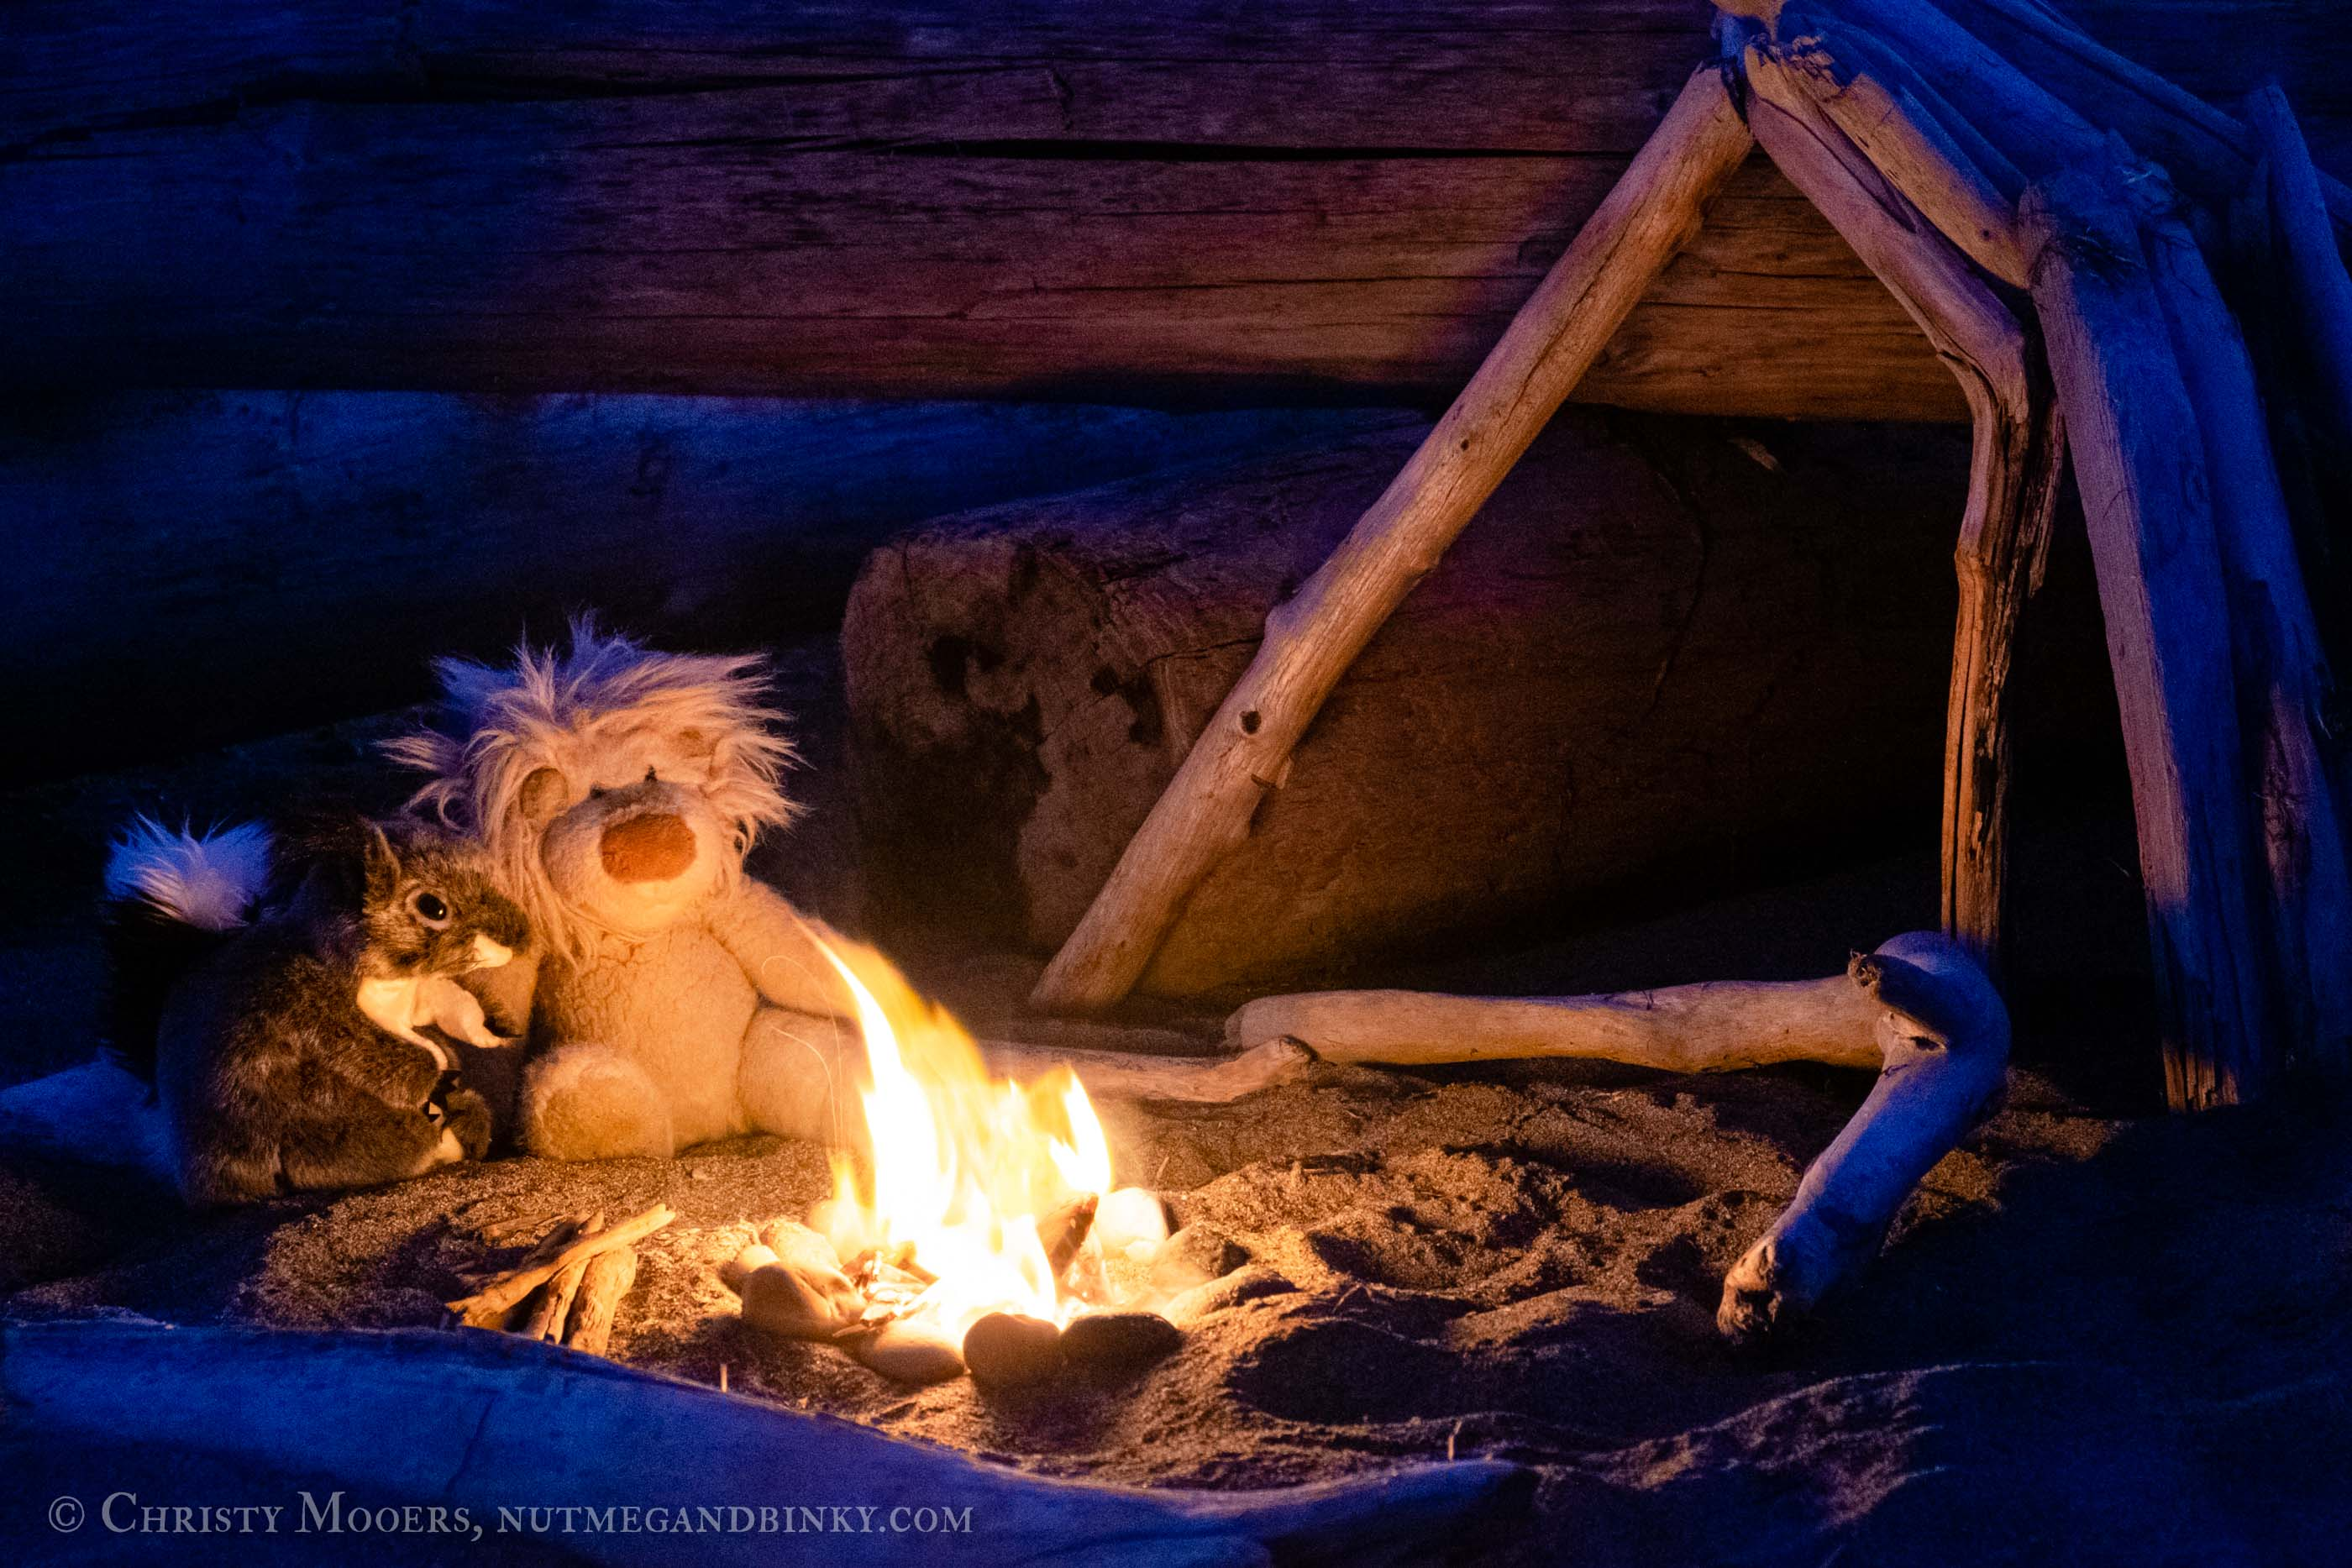 plush squirrel and lion having a campfire on the beach